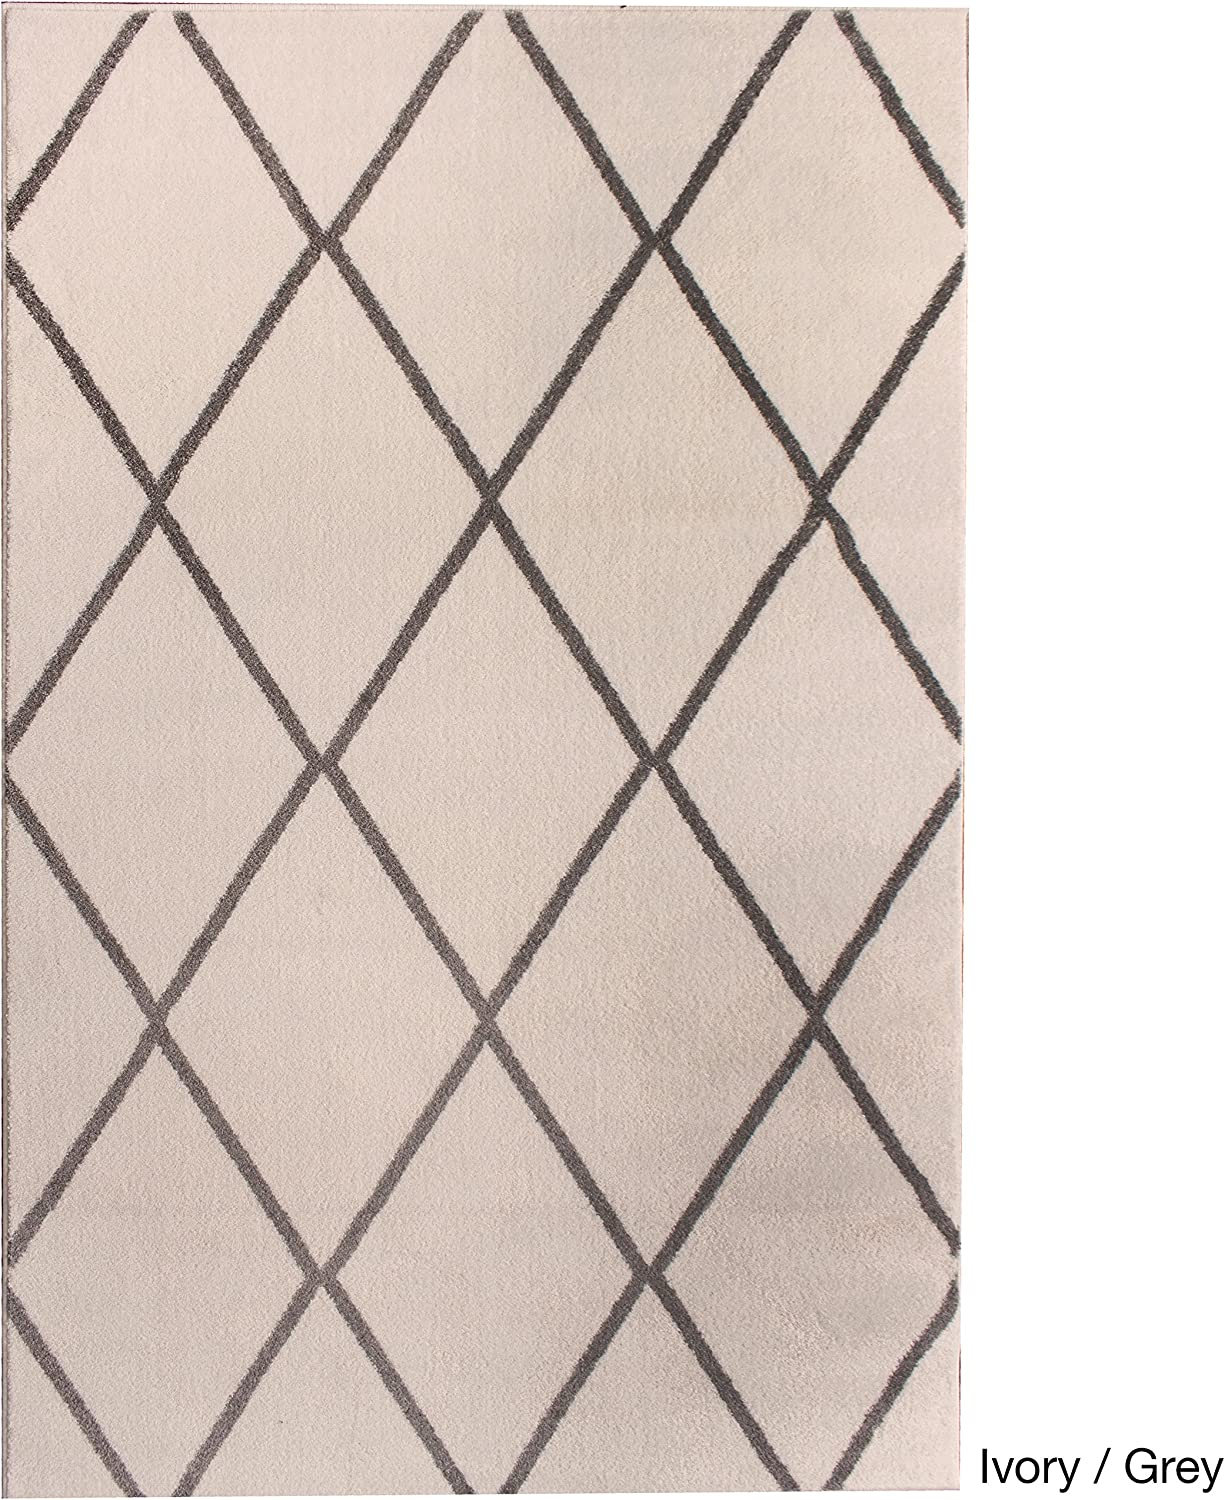 Super Area Rugs Metro Modern Diamonds Rug Grey White 7 10 X 9 10 Furniture Decor